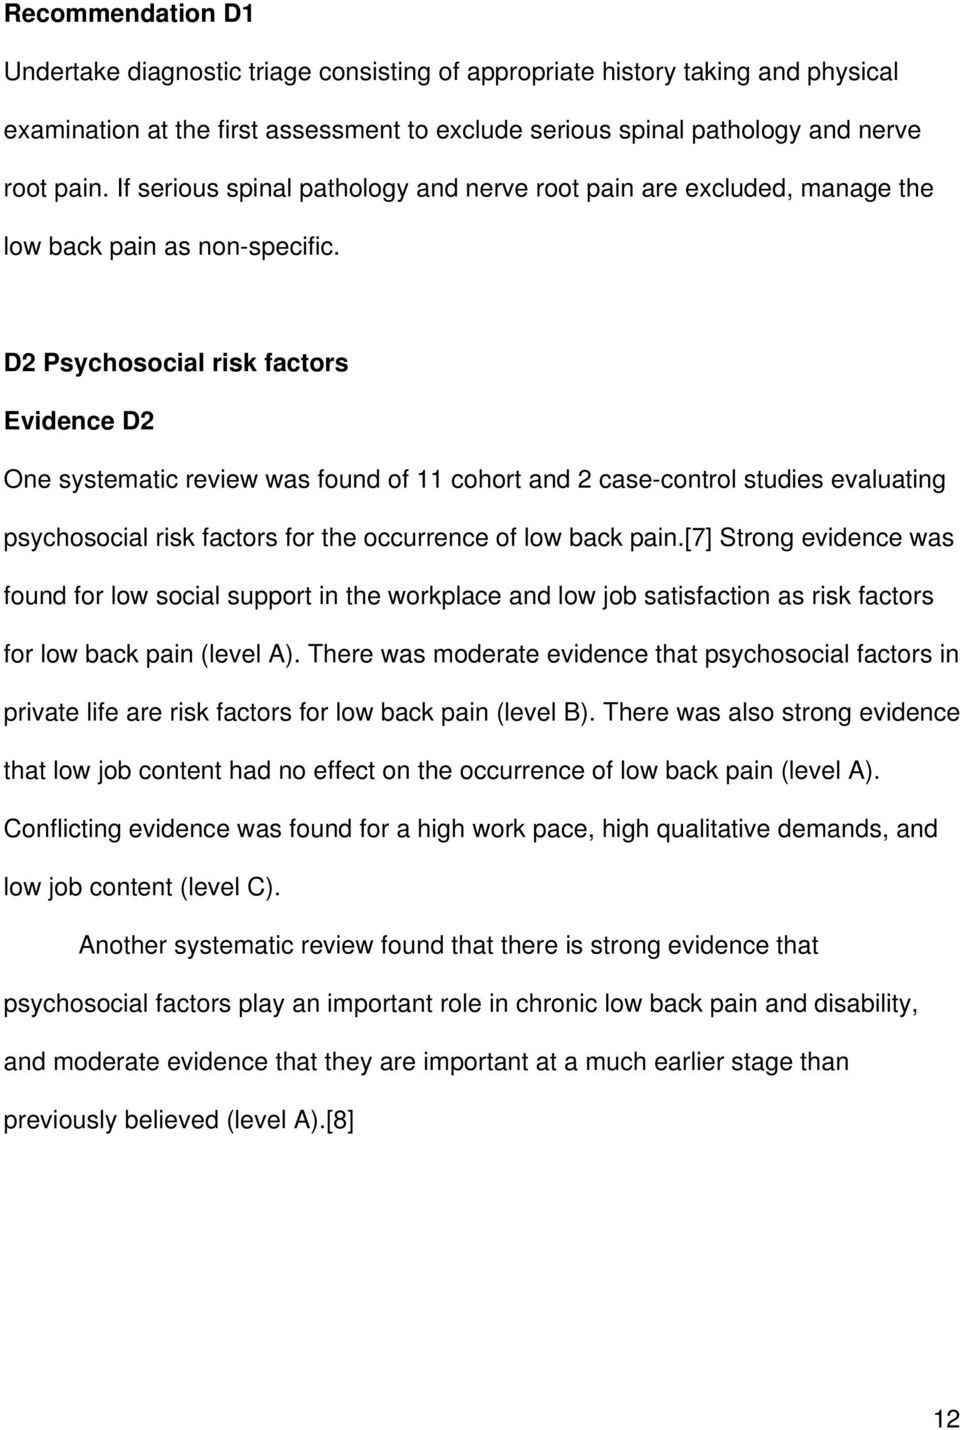 D2 Psychosocial risk factors Evidence D2 One systematic review was found of 11 cohort and 2 case-control studies evaluating psychosocial risk factors for the occurrence of low back pain.